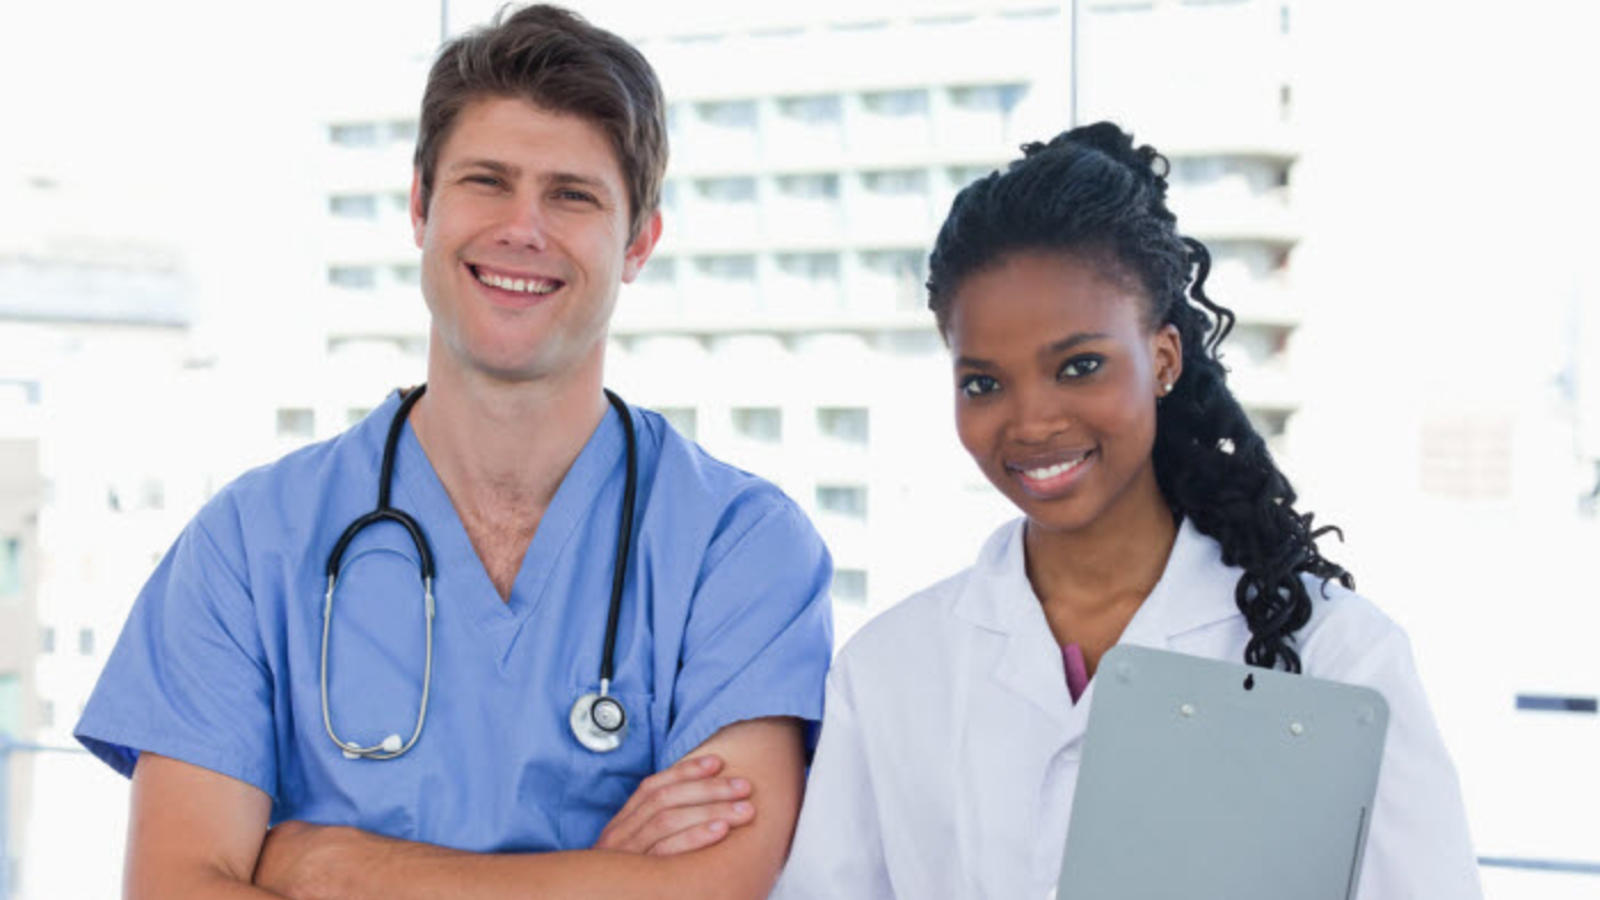 the growing career field of medical assisting